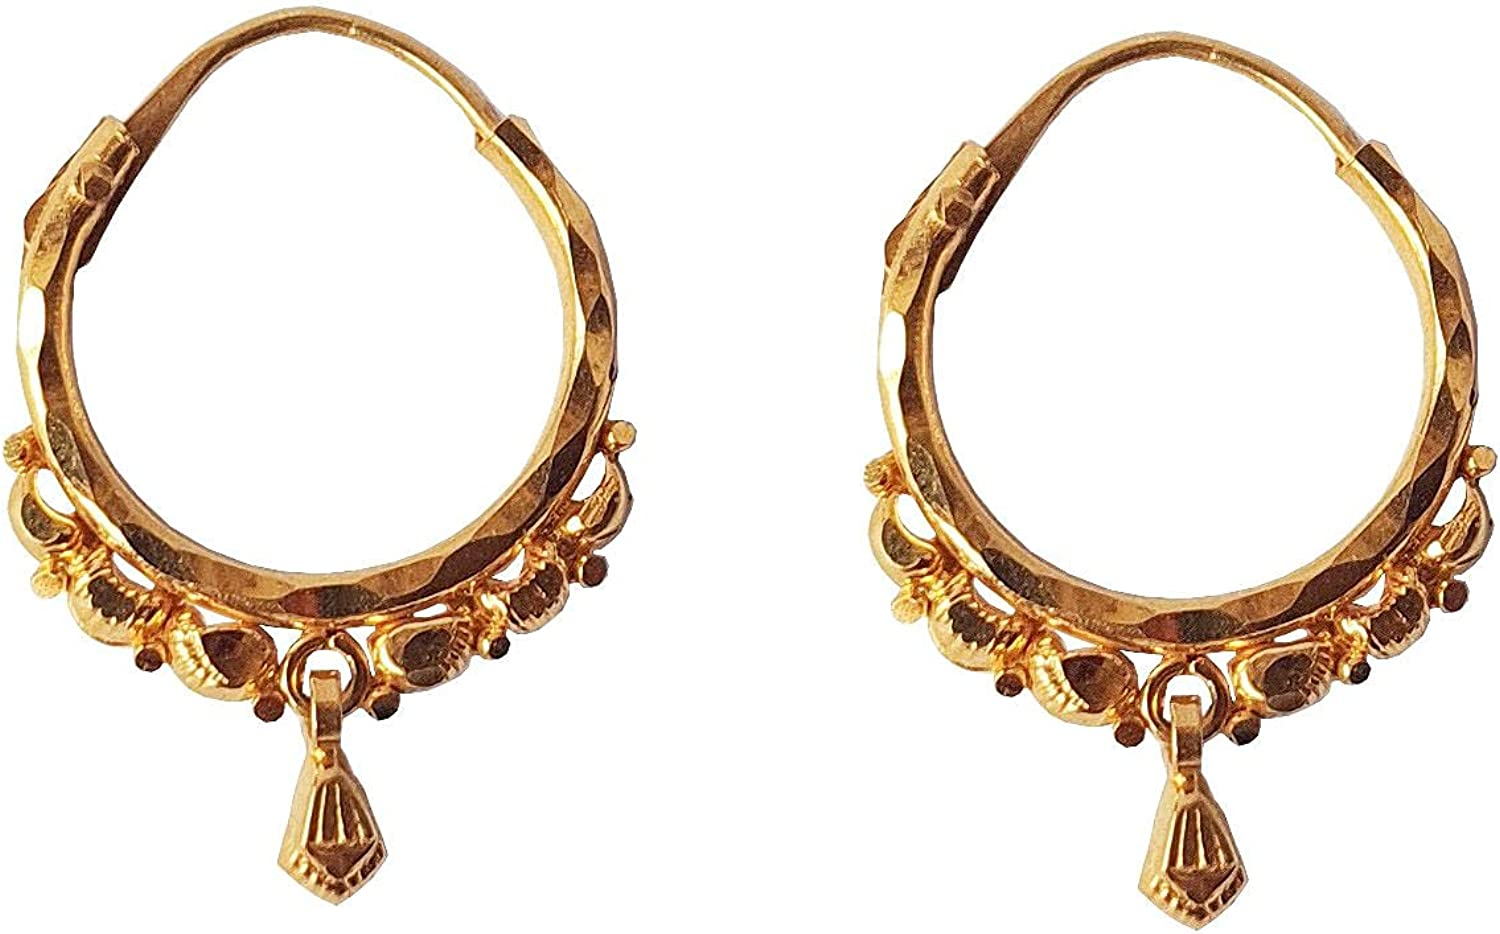 Certified Solid 22K/18K Yellow Fine Gold Unique Hanged Leaf Design Hoop Earrings Available In Both 22 Carat And 18 Carat Fine Gold,Size Height-10MM Width-10MM For Women,Girls,Kids,Men's Bali,Gifts